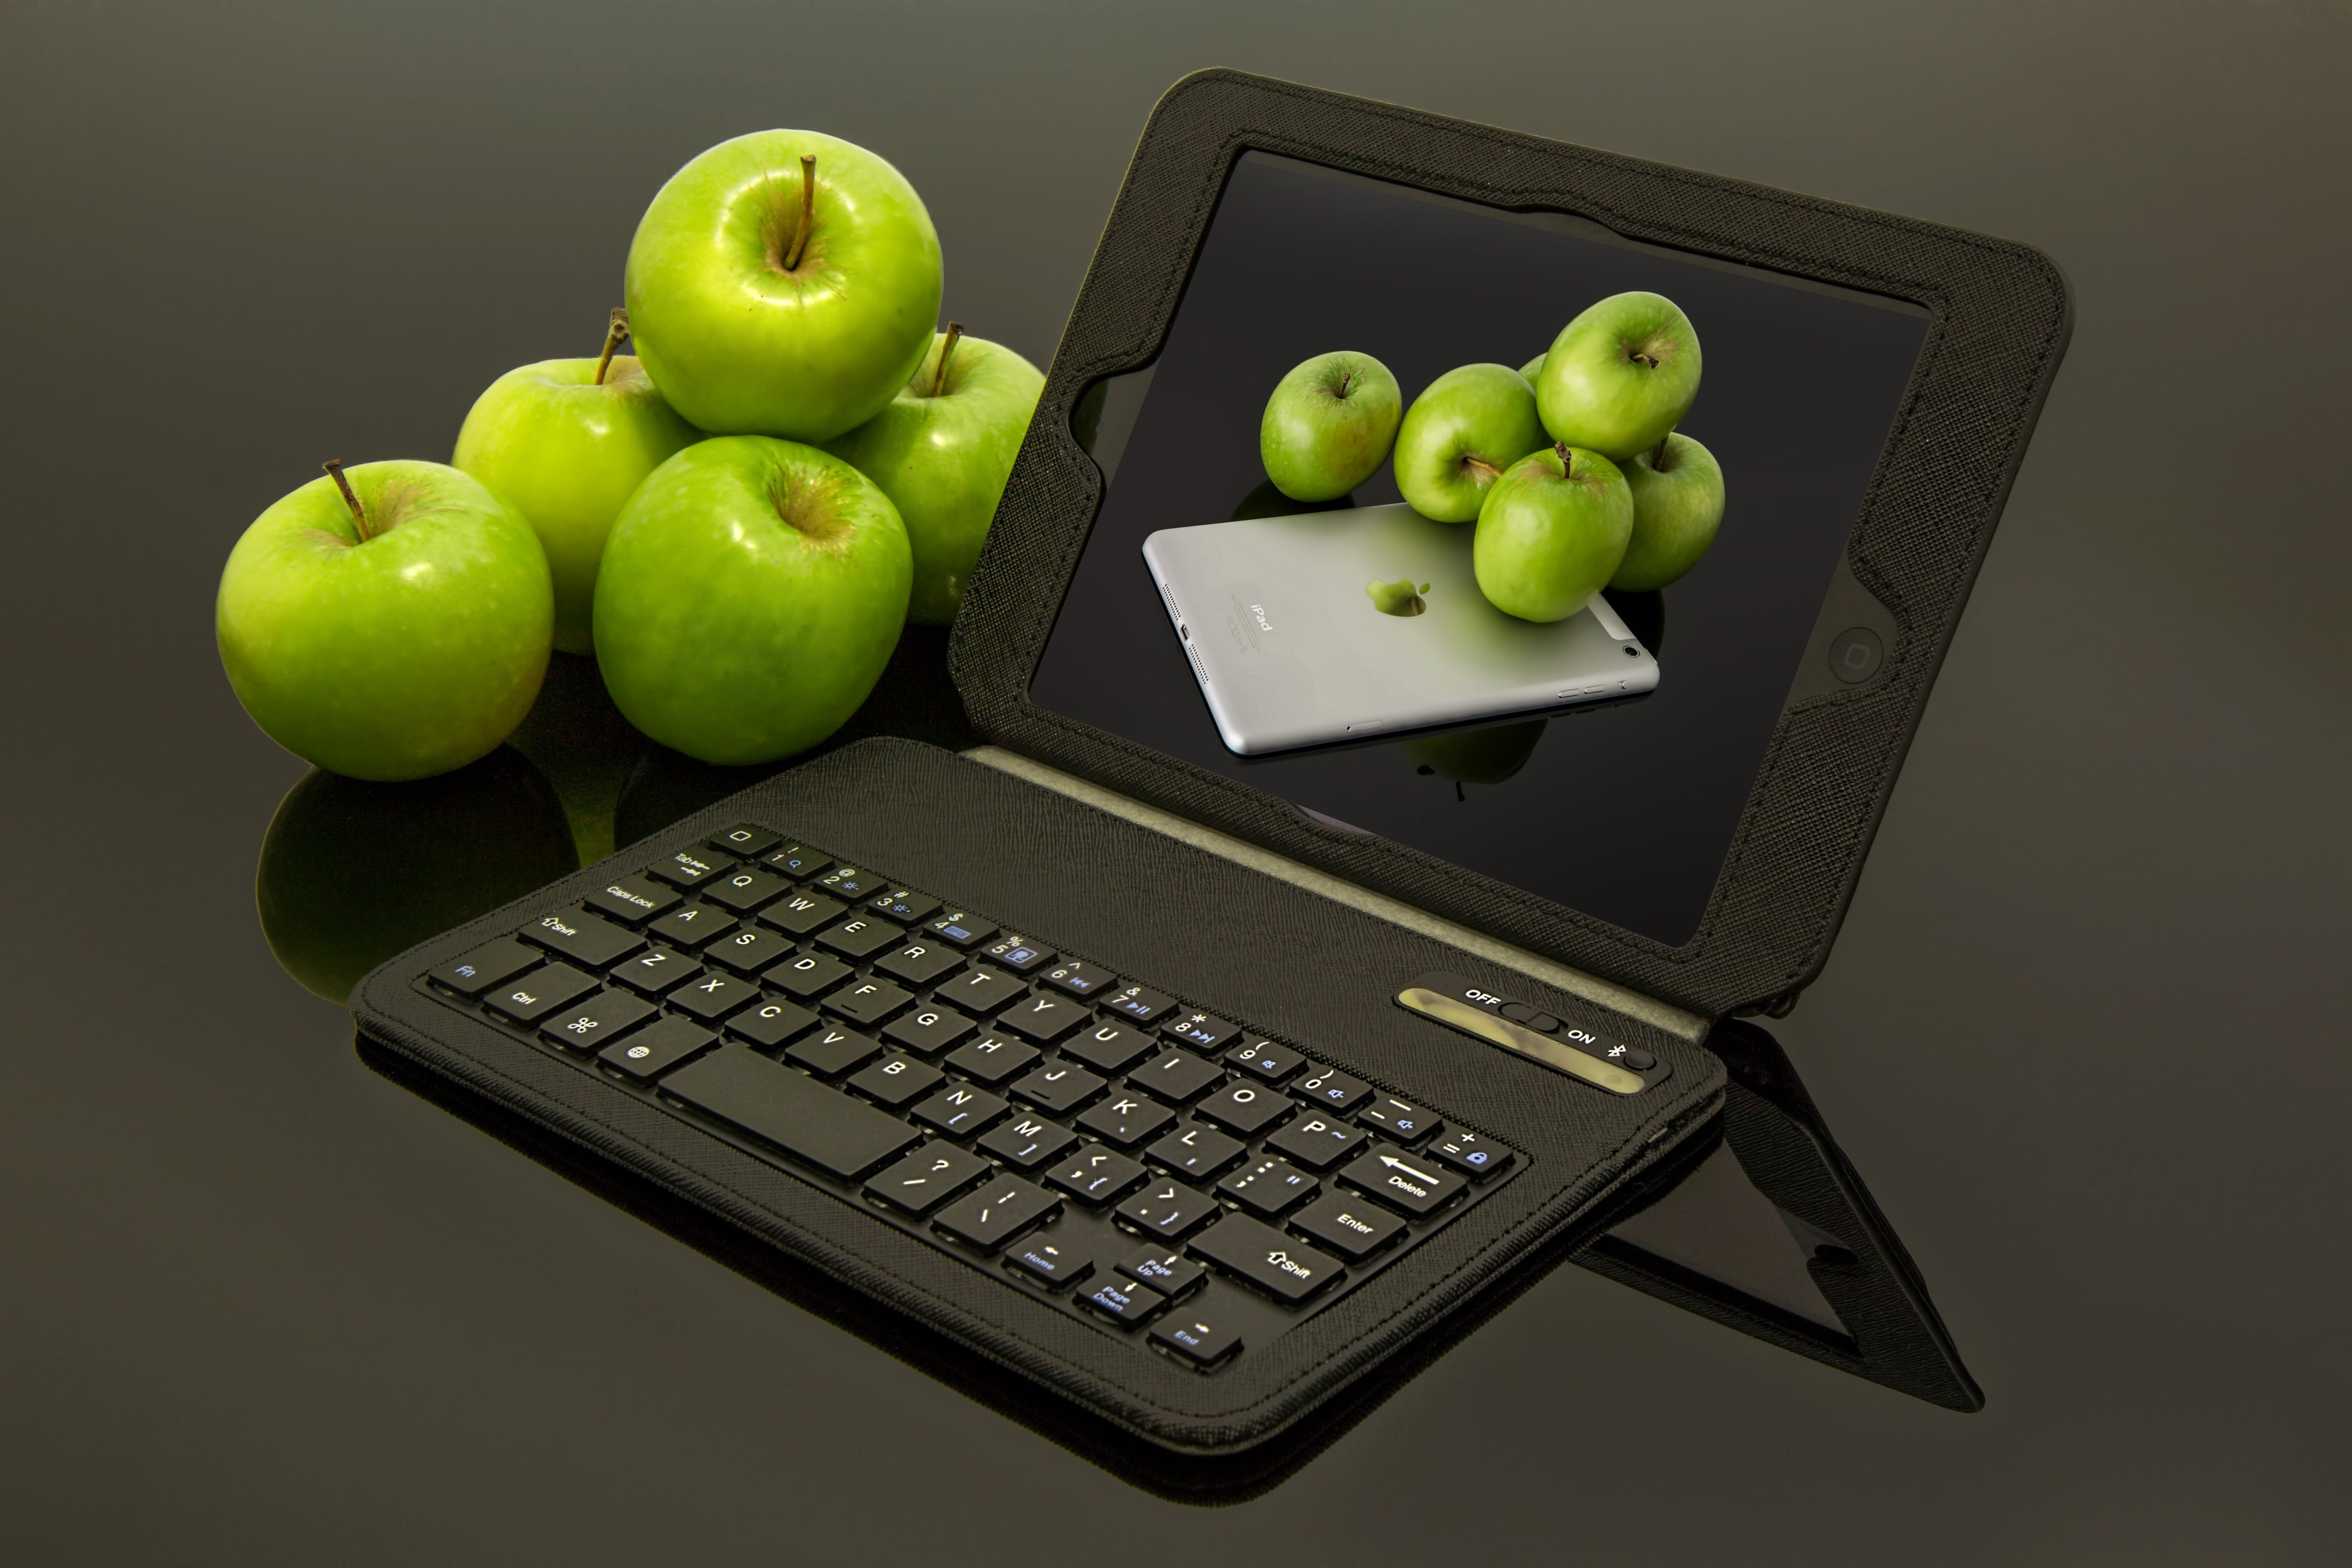 Black Laptop Computer Beside Green Apples